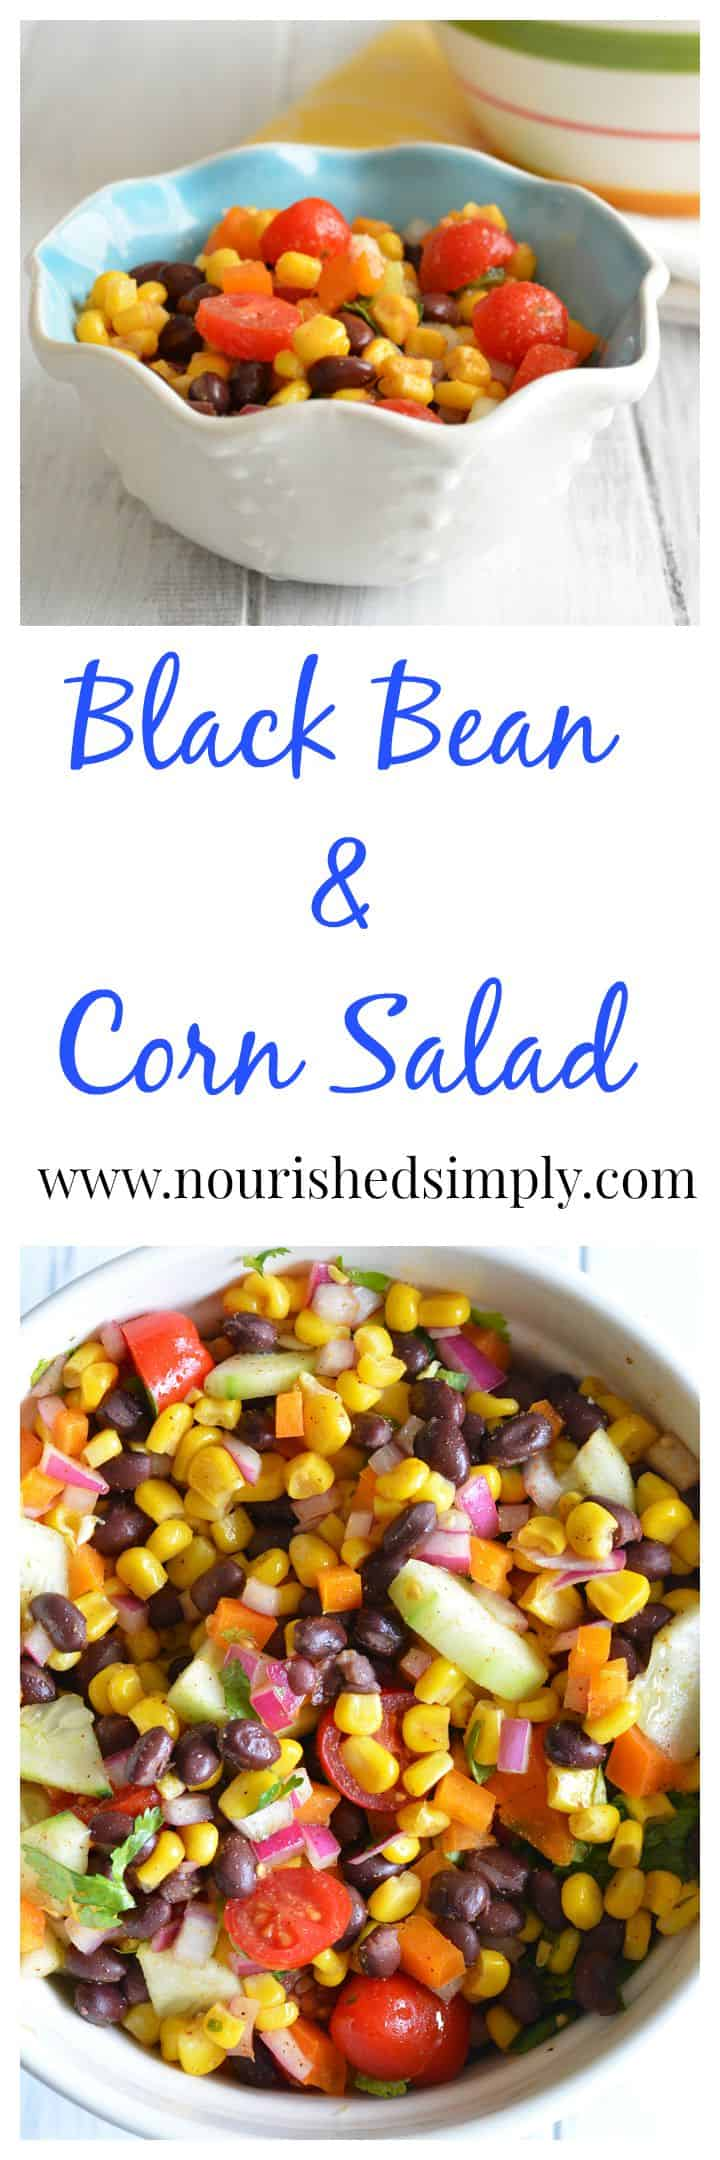 Easy Black Bean and Corn Salad - great way to use leftovers. Ready in minutes!